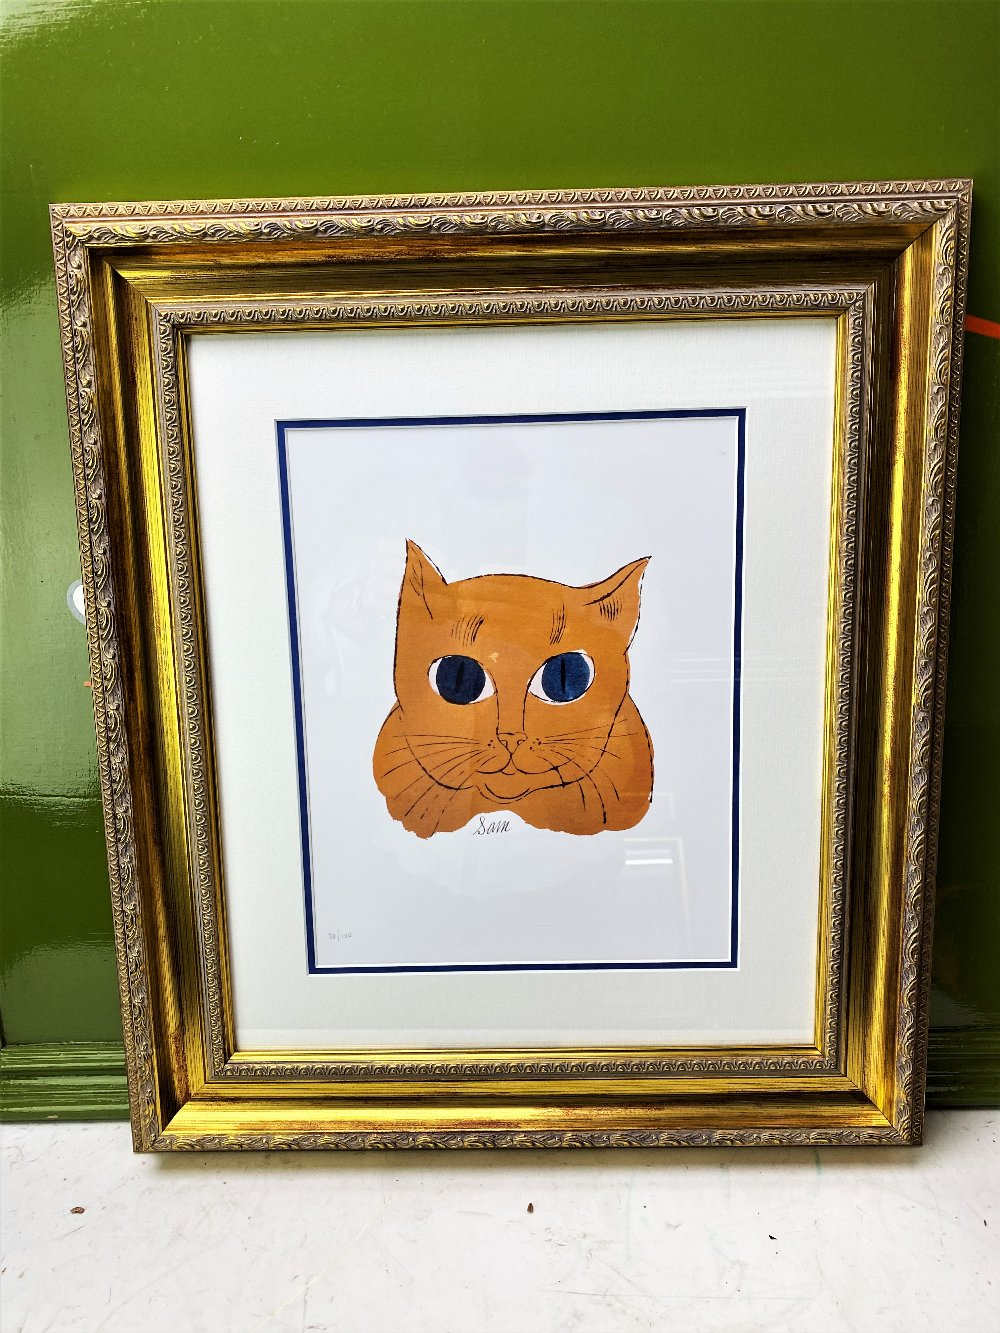 Andy Warhol 'Gold Sam' Lithograph Print/Ornate Framed - Image 5 of 5